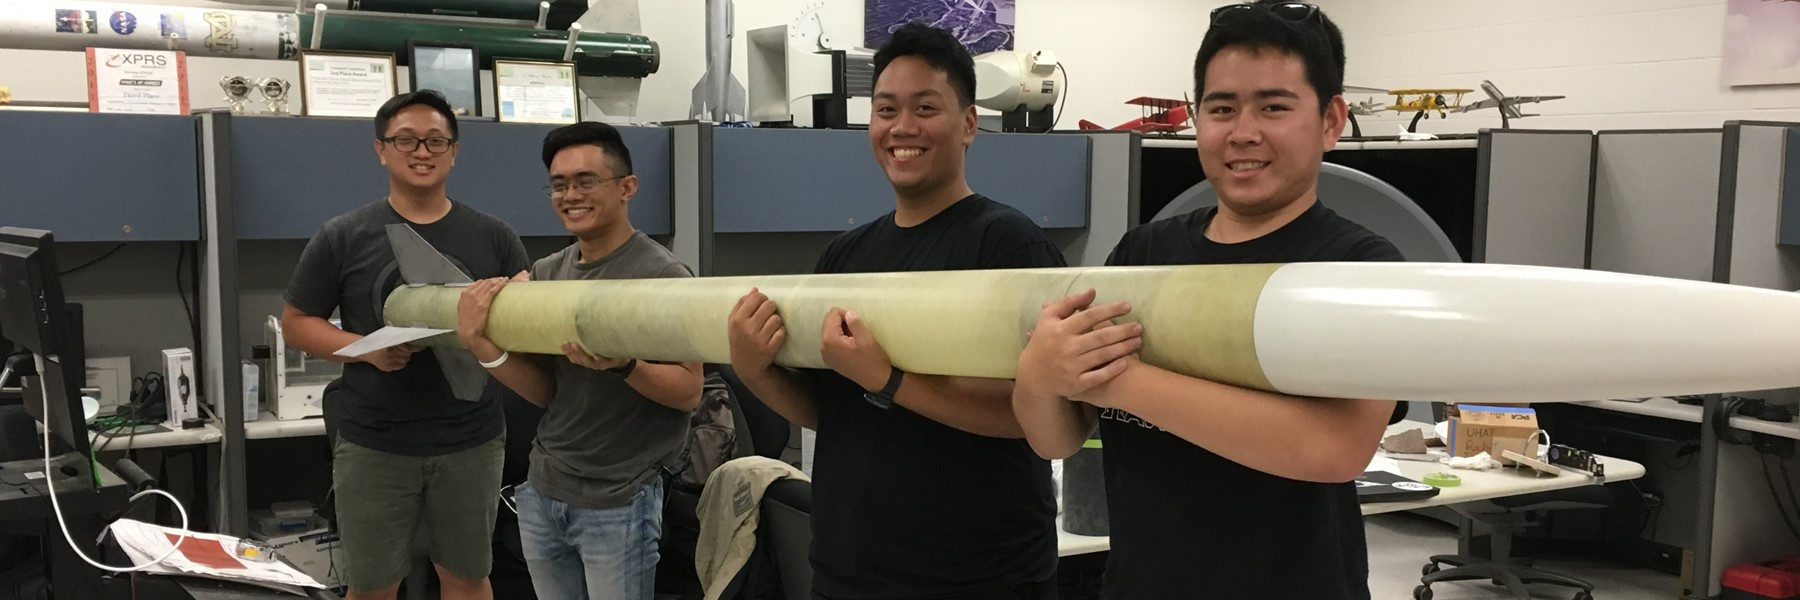 Four men holding an 11' rocket.